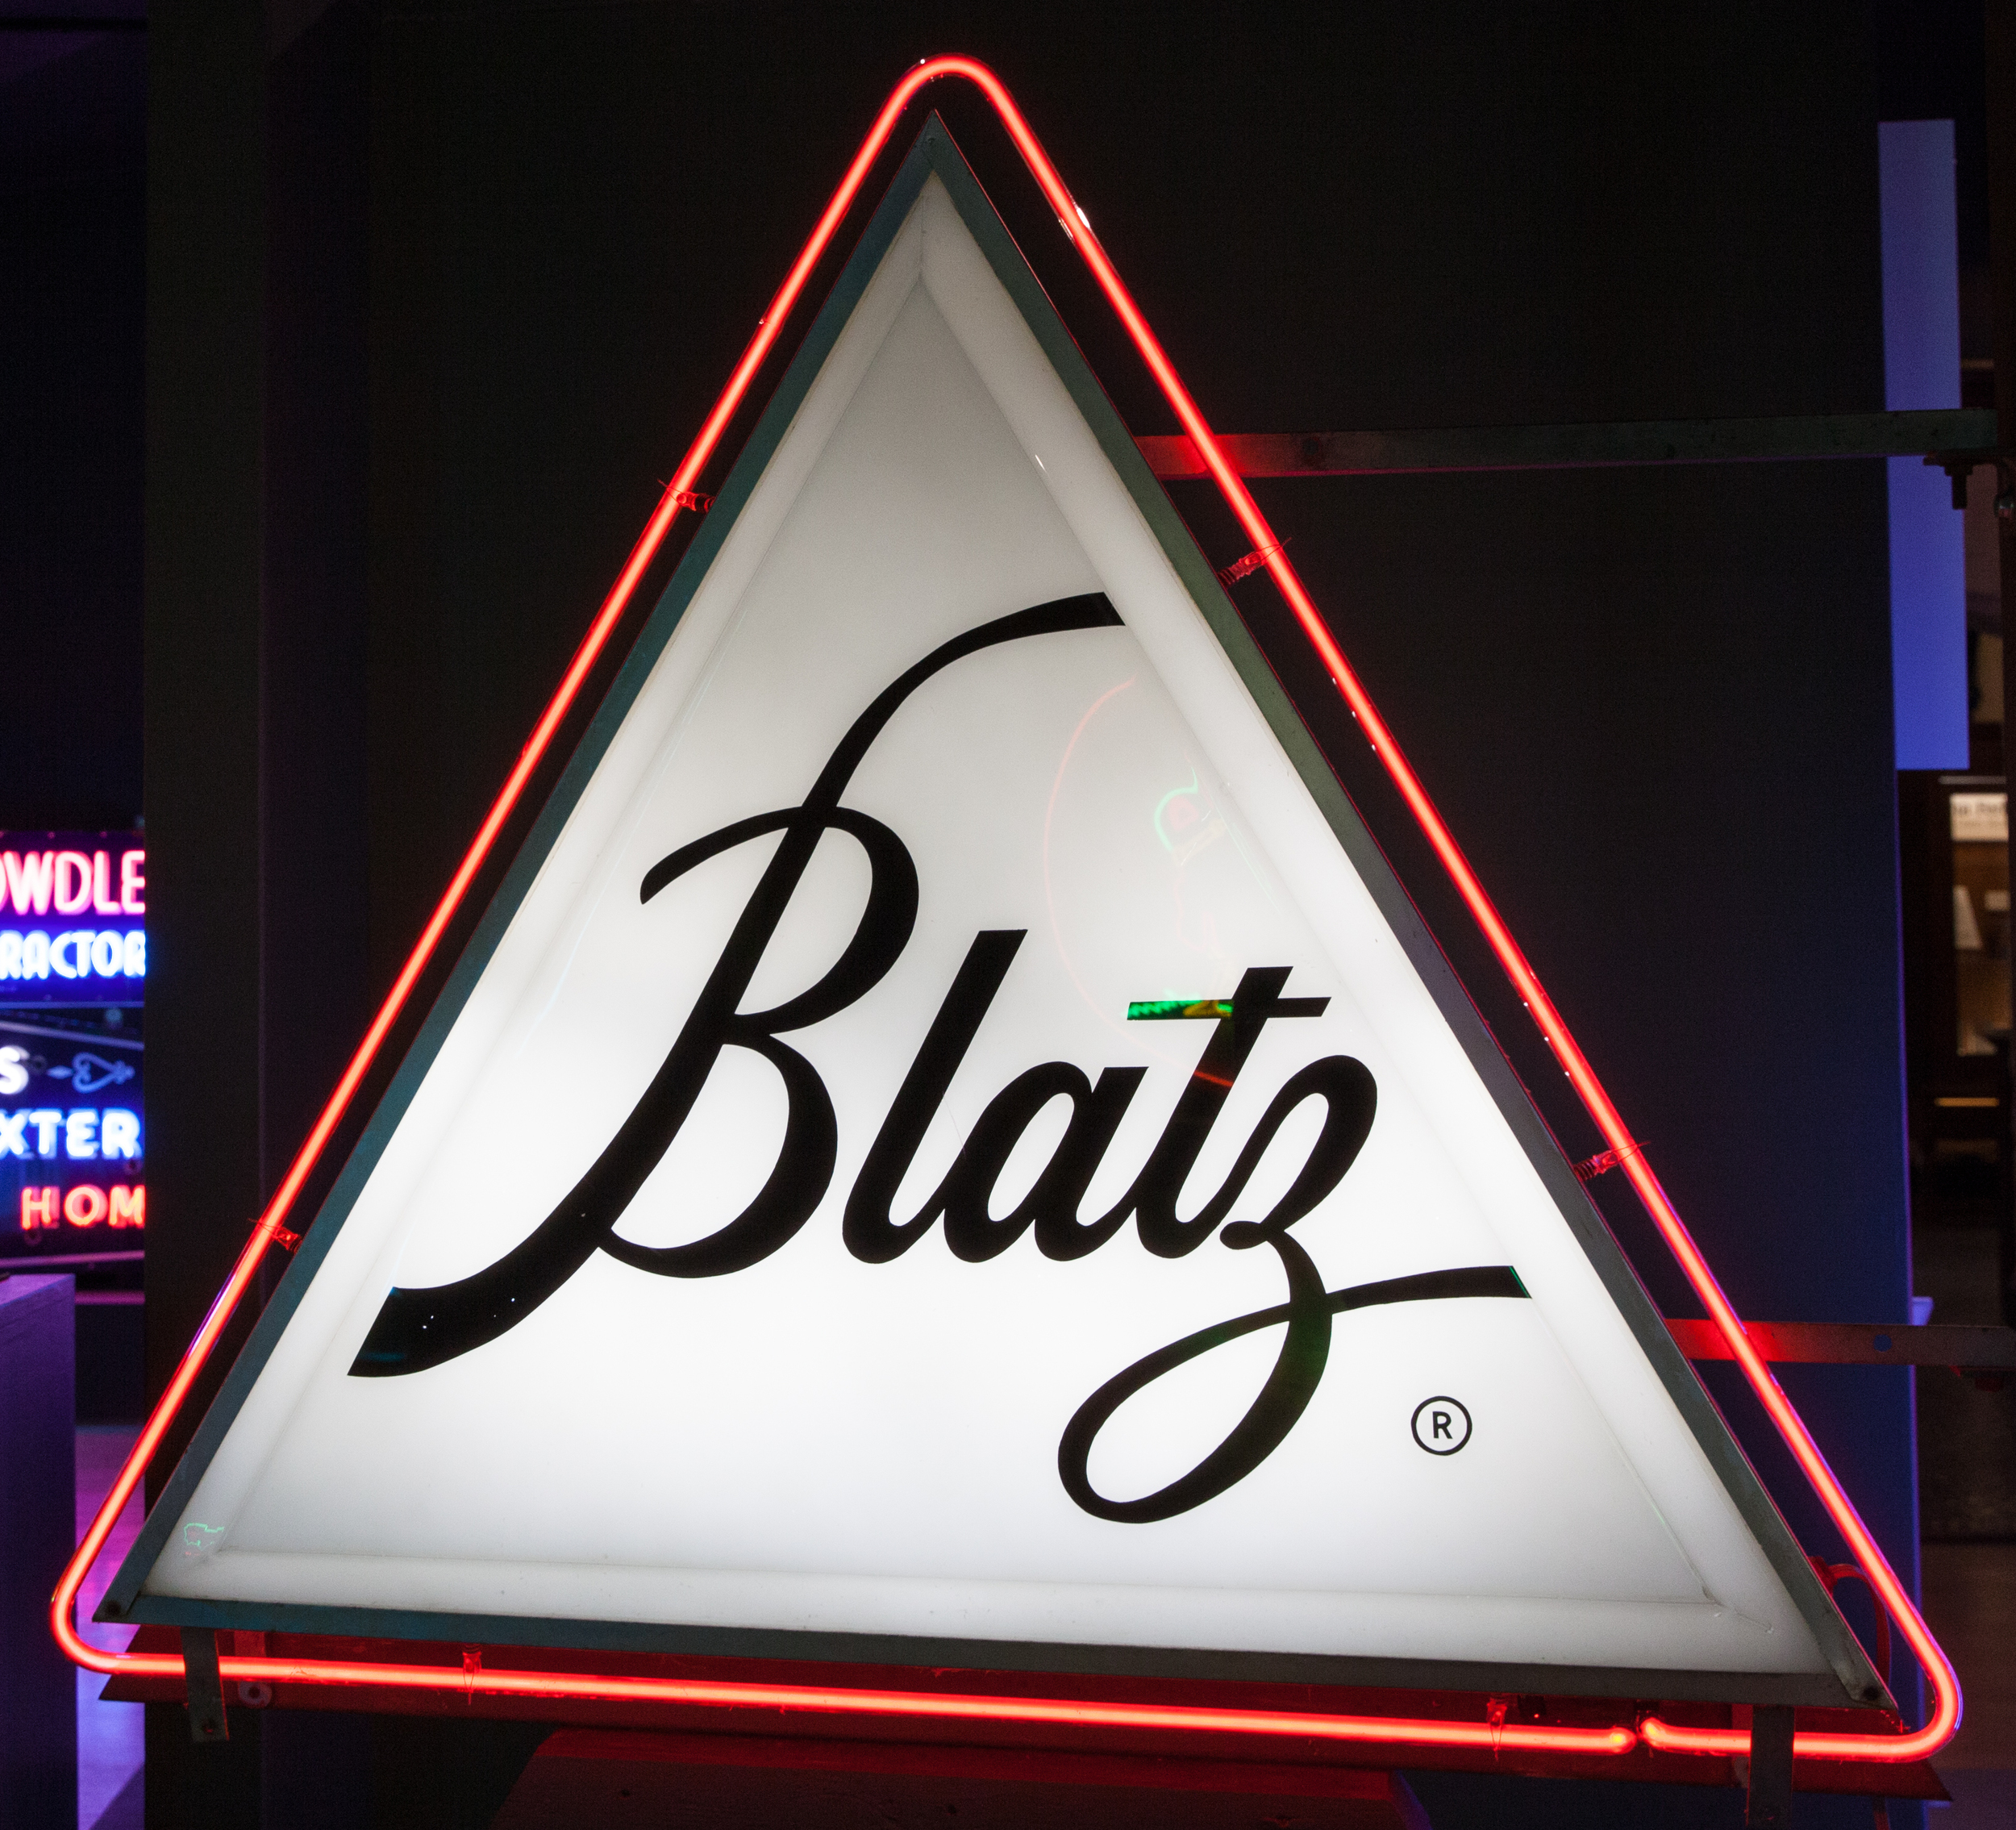 Blatz Beer Plastic and Neon Sign.